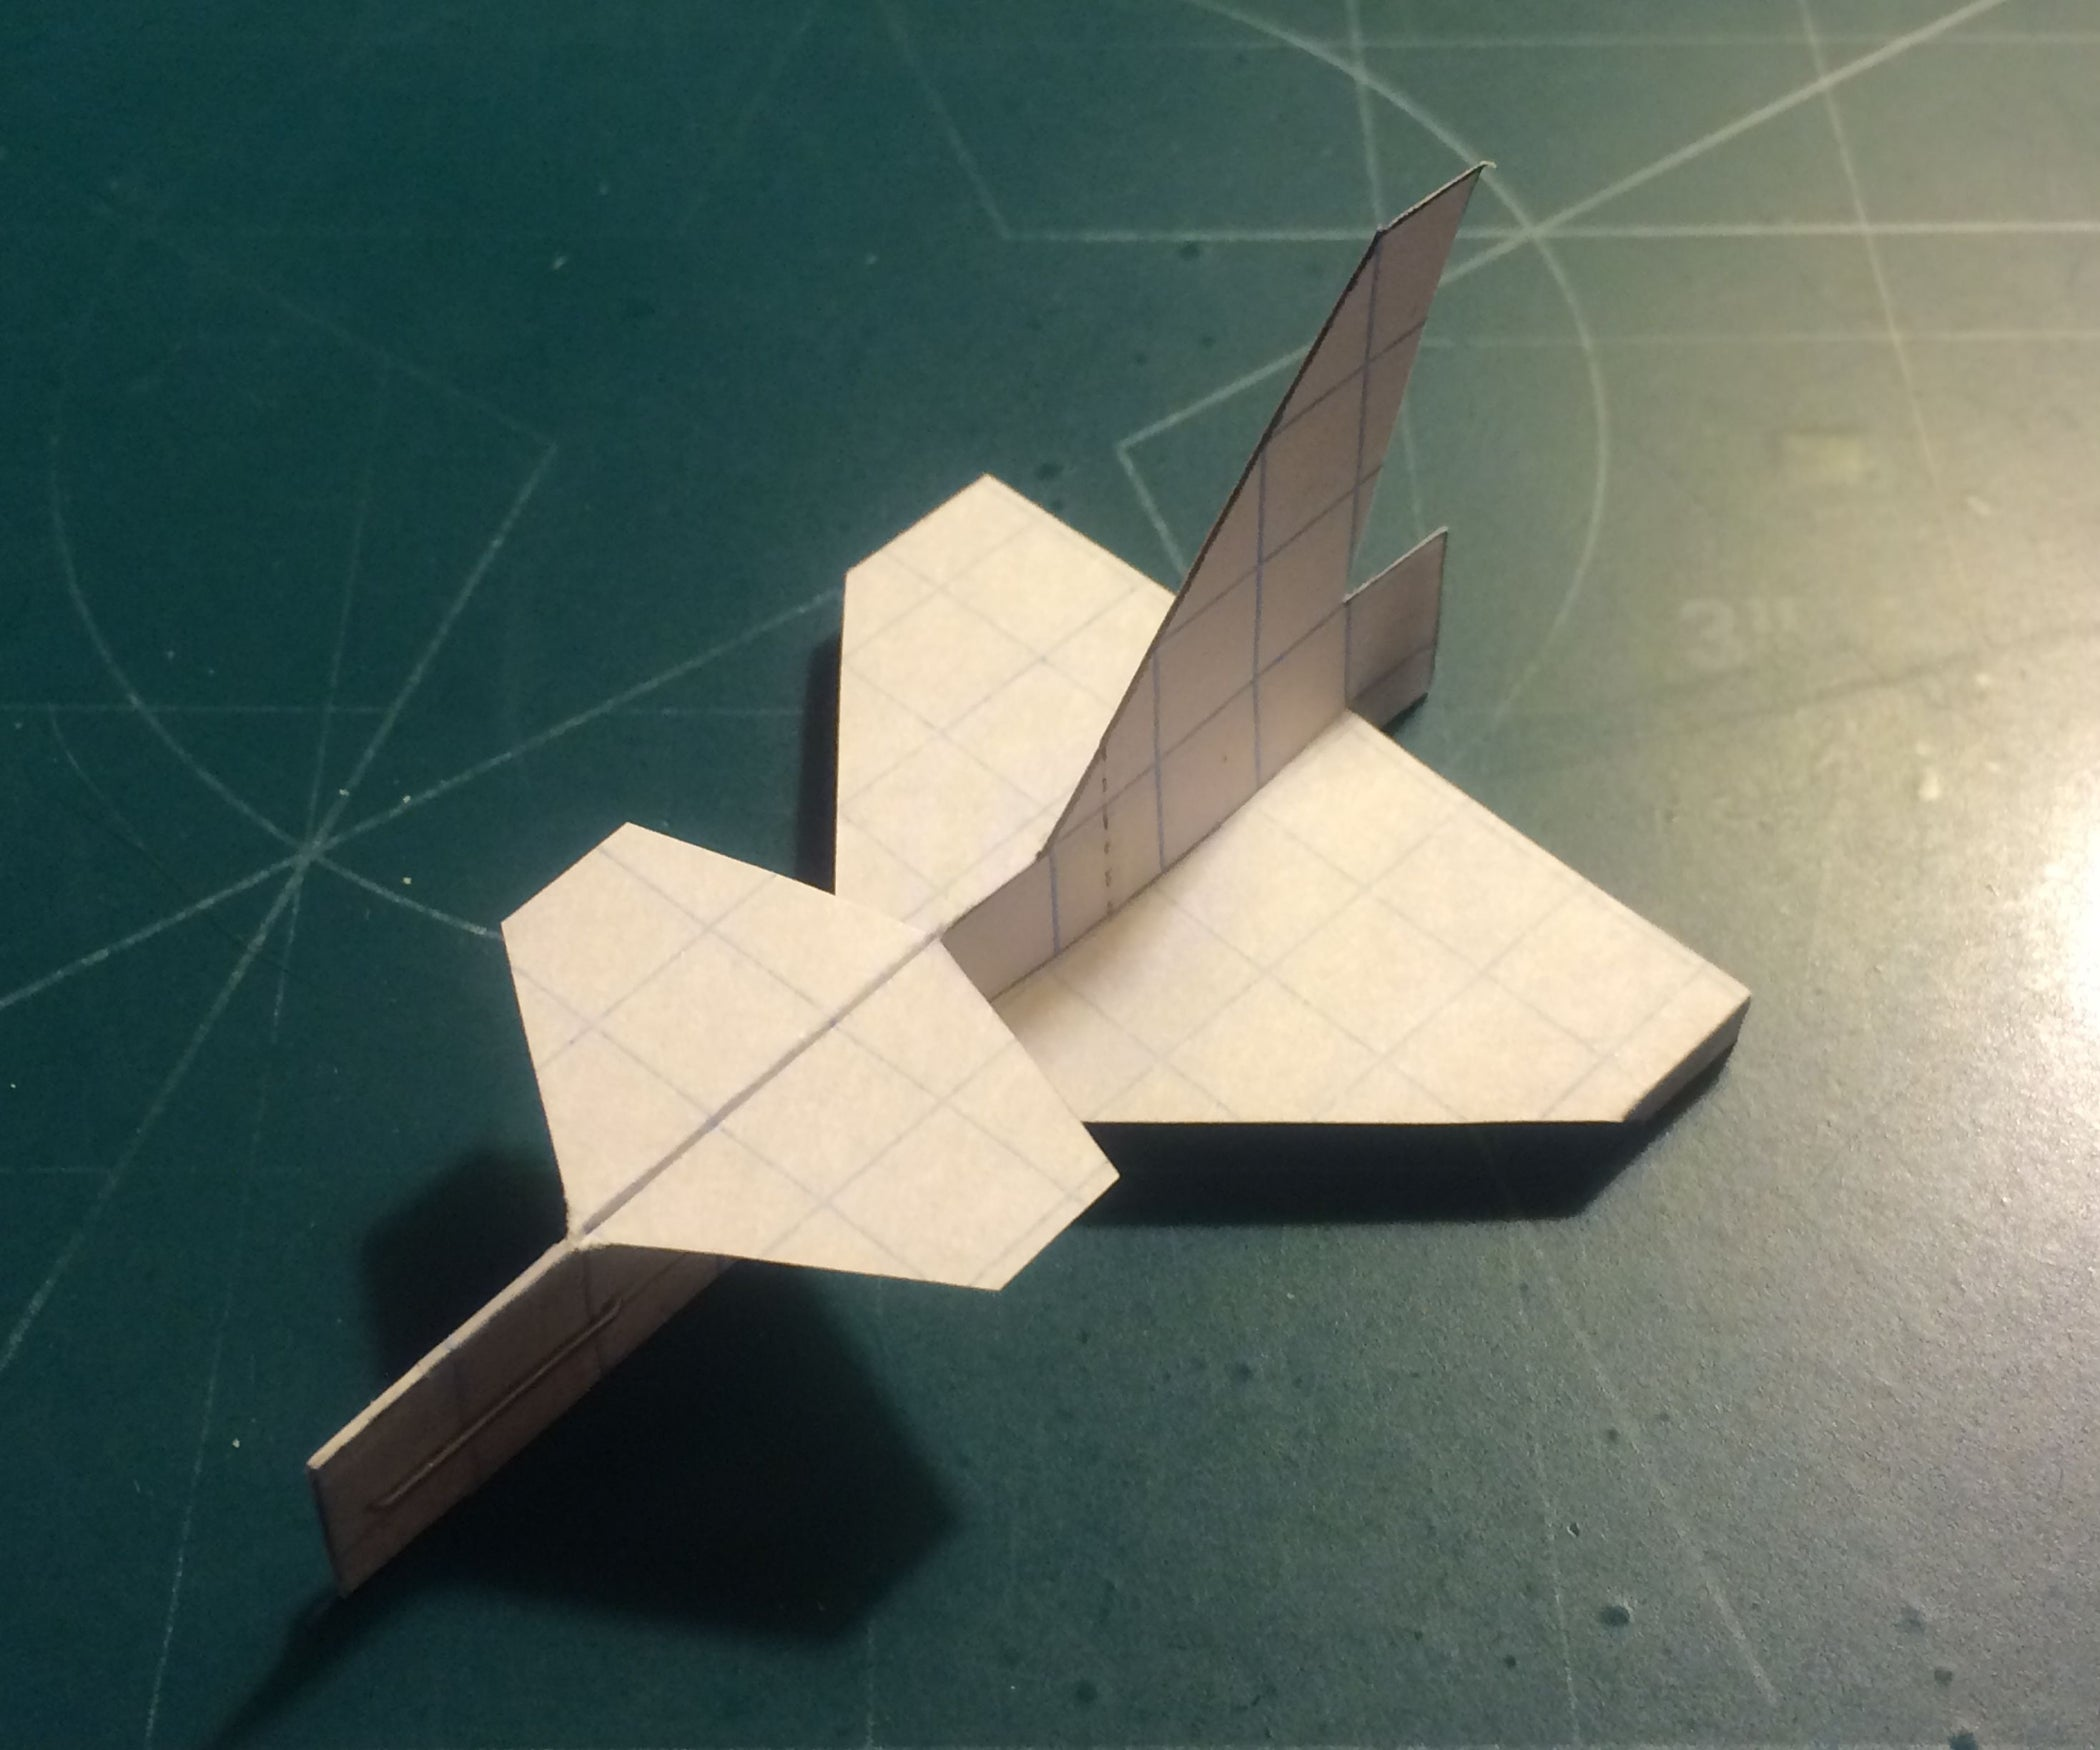 How to Make the Turbo Meteor Paper Airplane